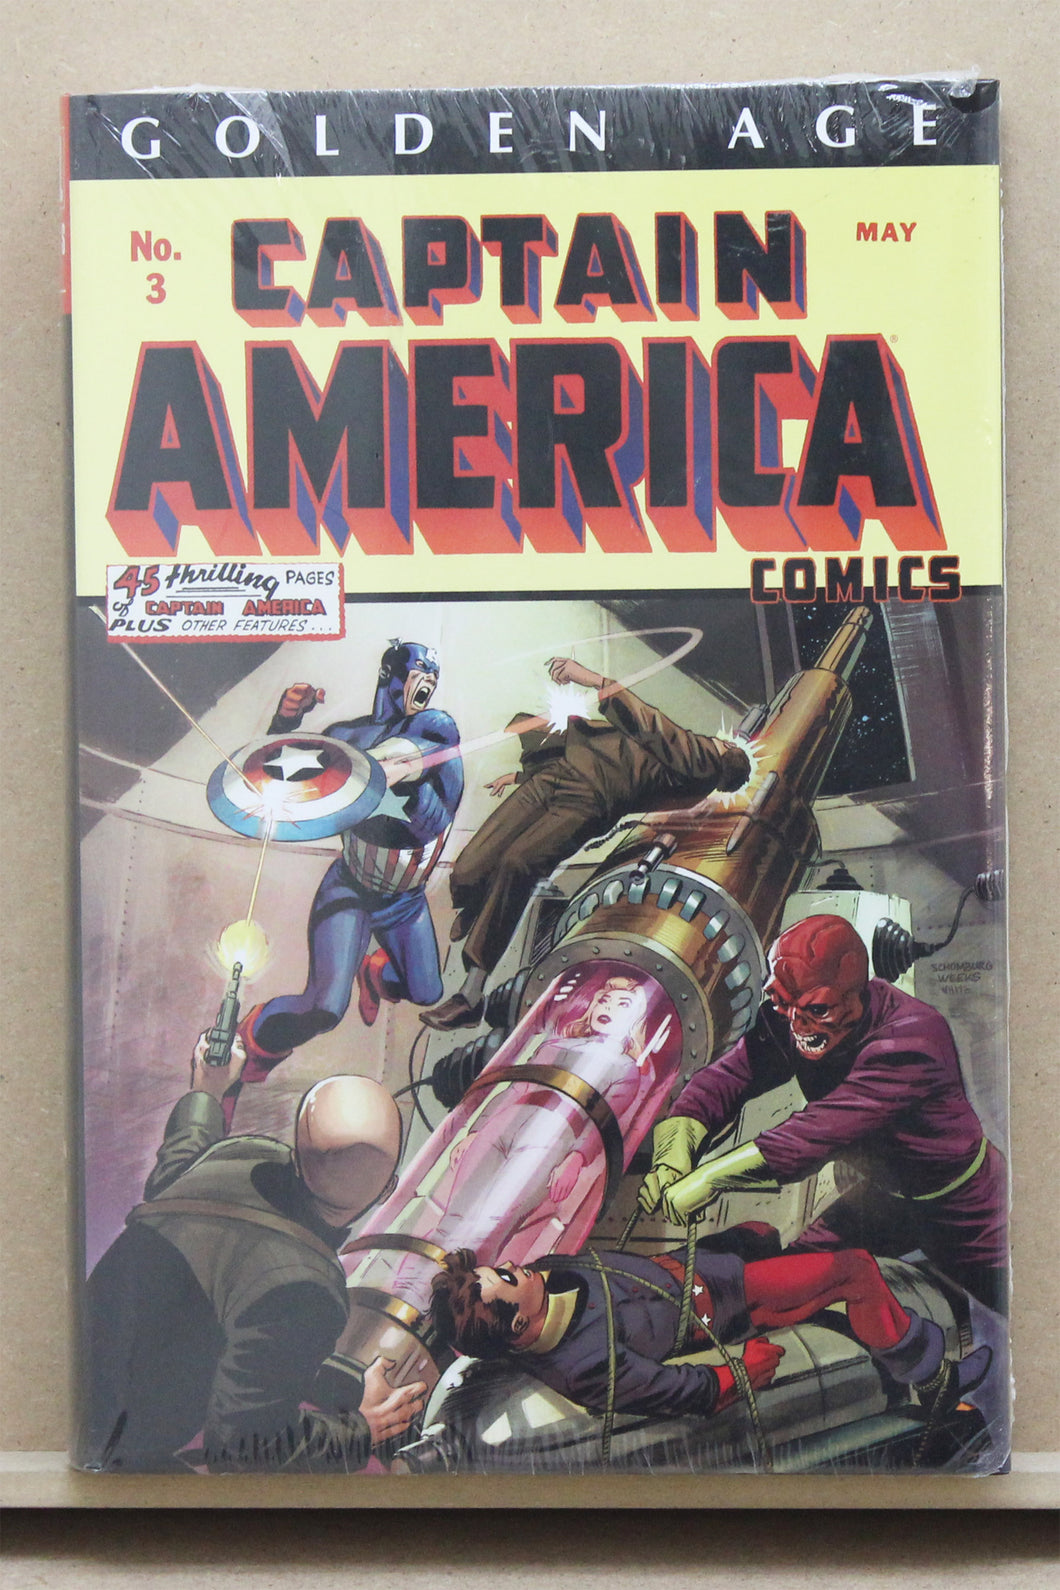 Golden Age Captain America 1